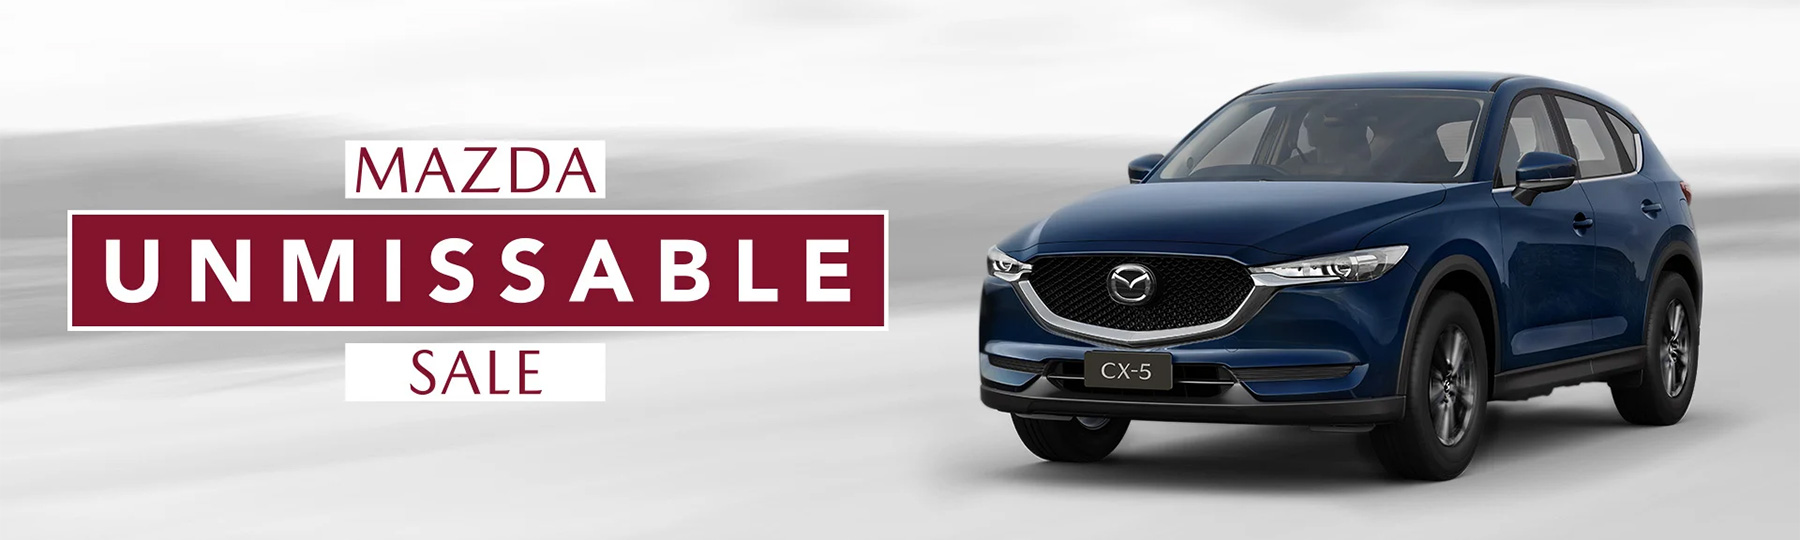 Mazda Unmissable Sale